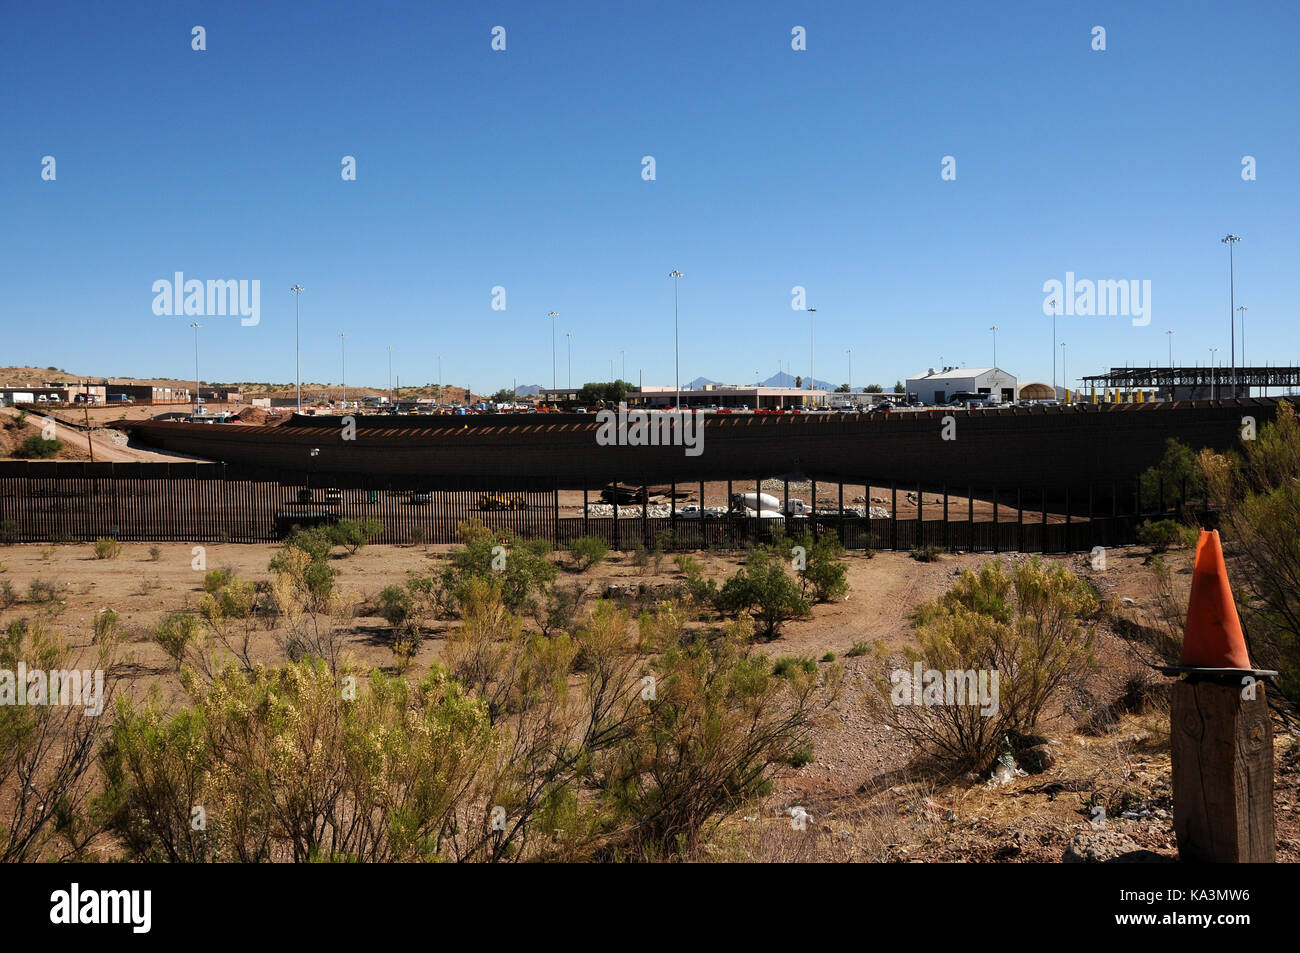 U S Port Of Entry Stock Photos Amp U S Port Of Entry Stock